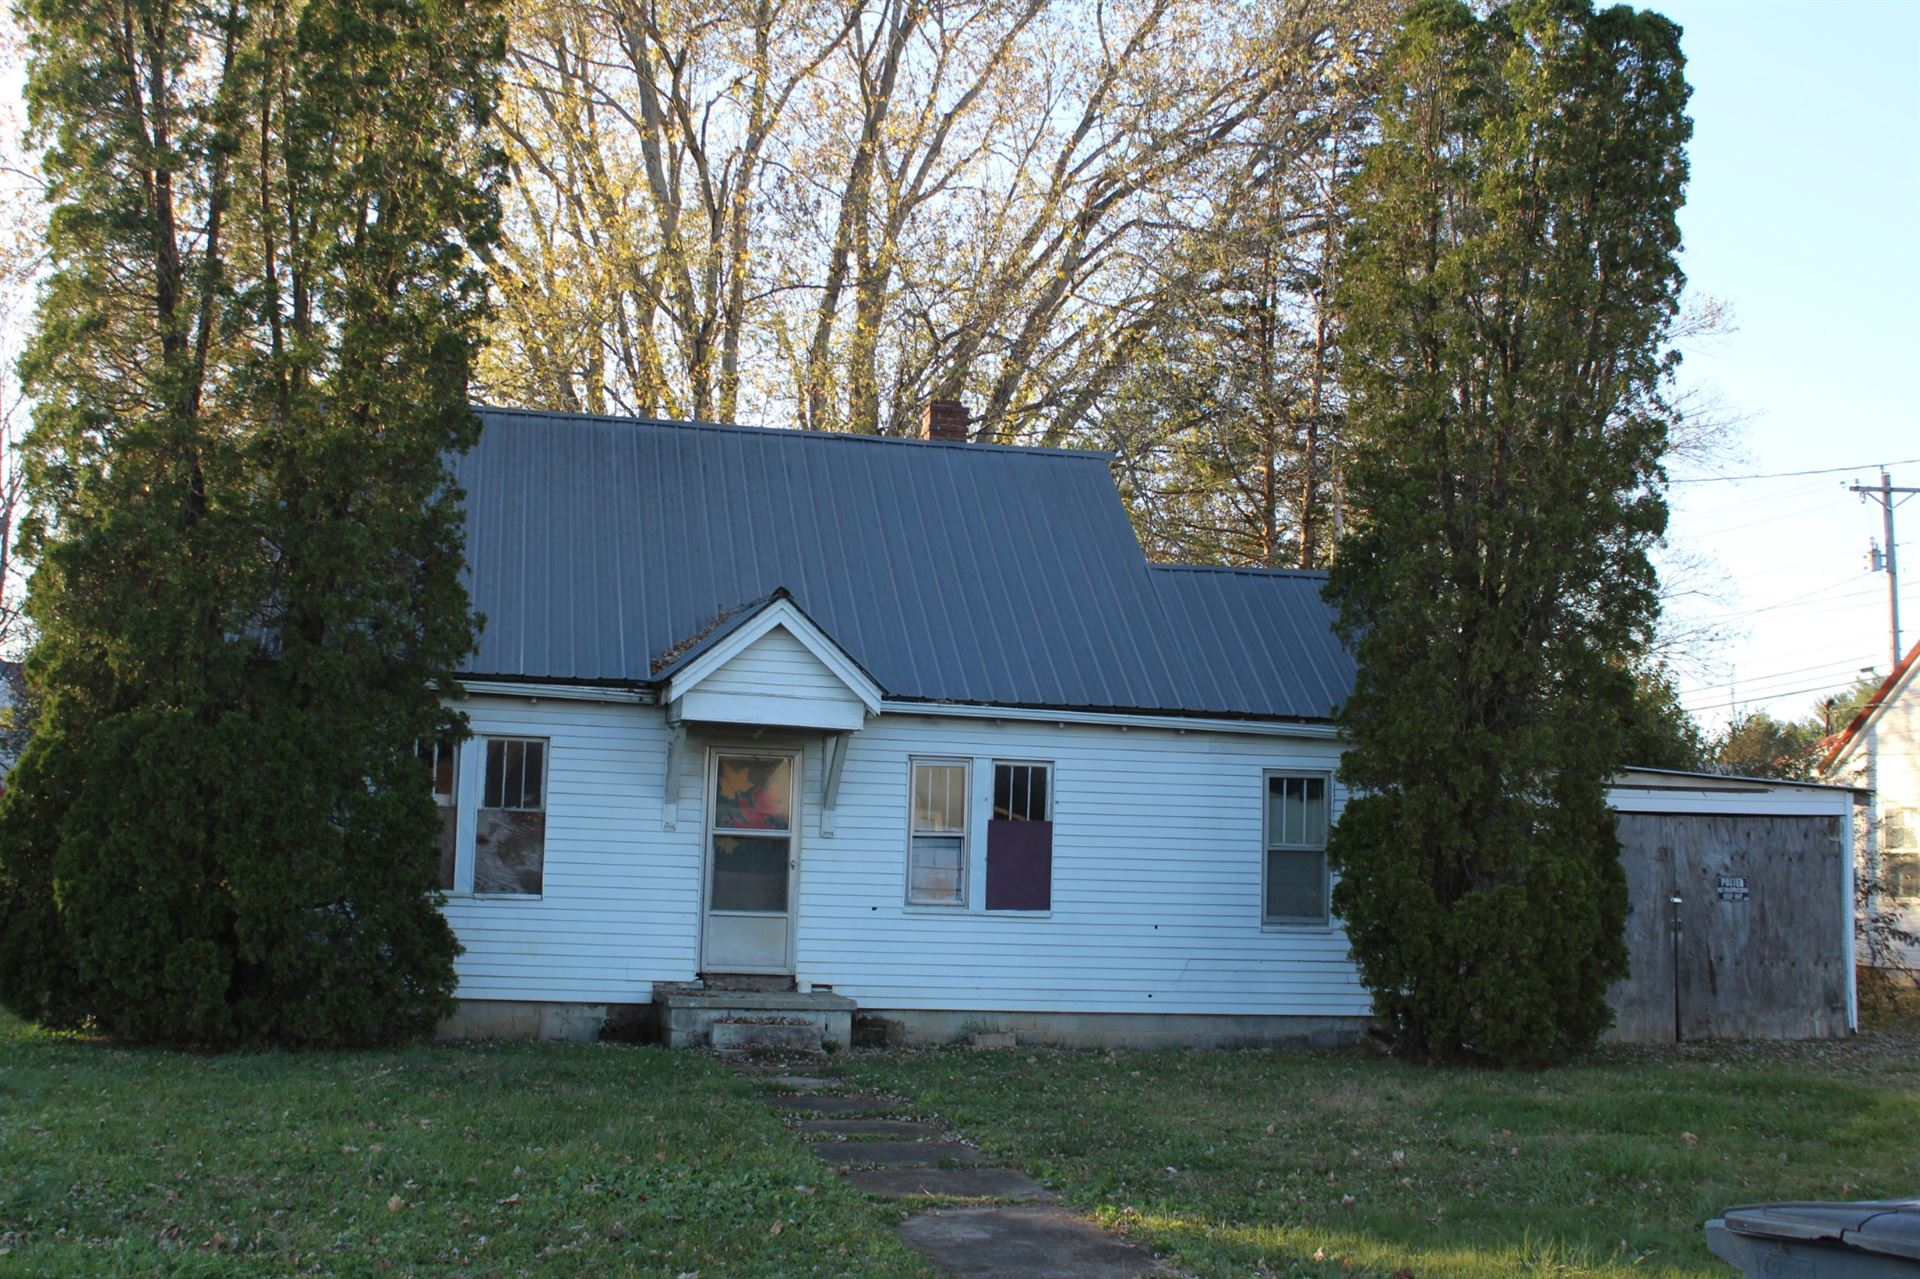 213 Childress St, McMinnville, TN 37110 - MLS#: 2208518